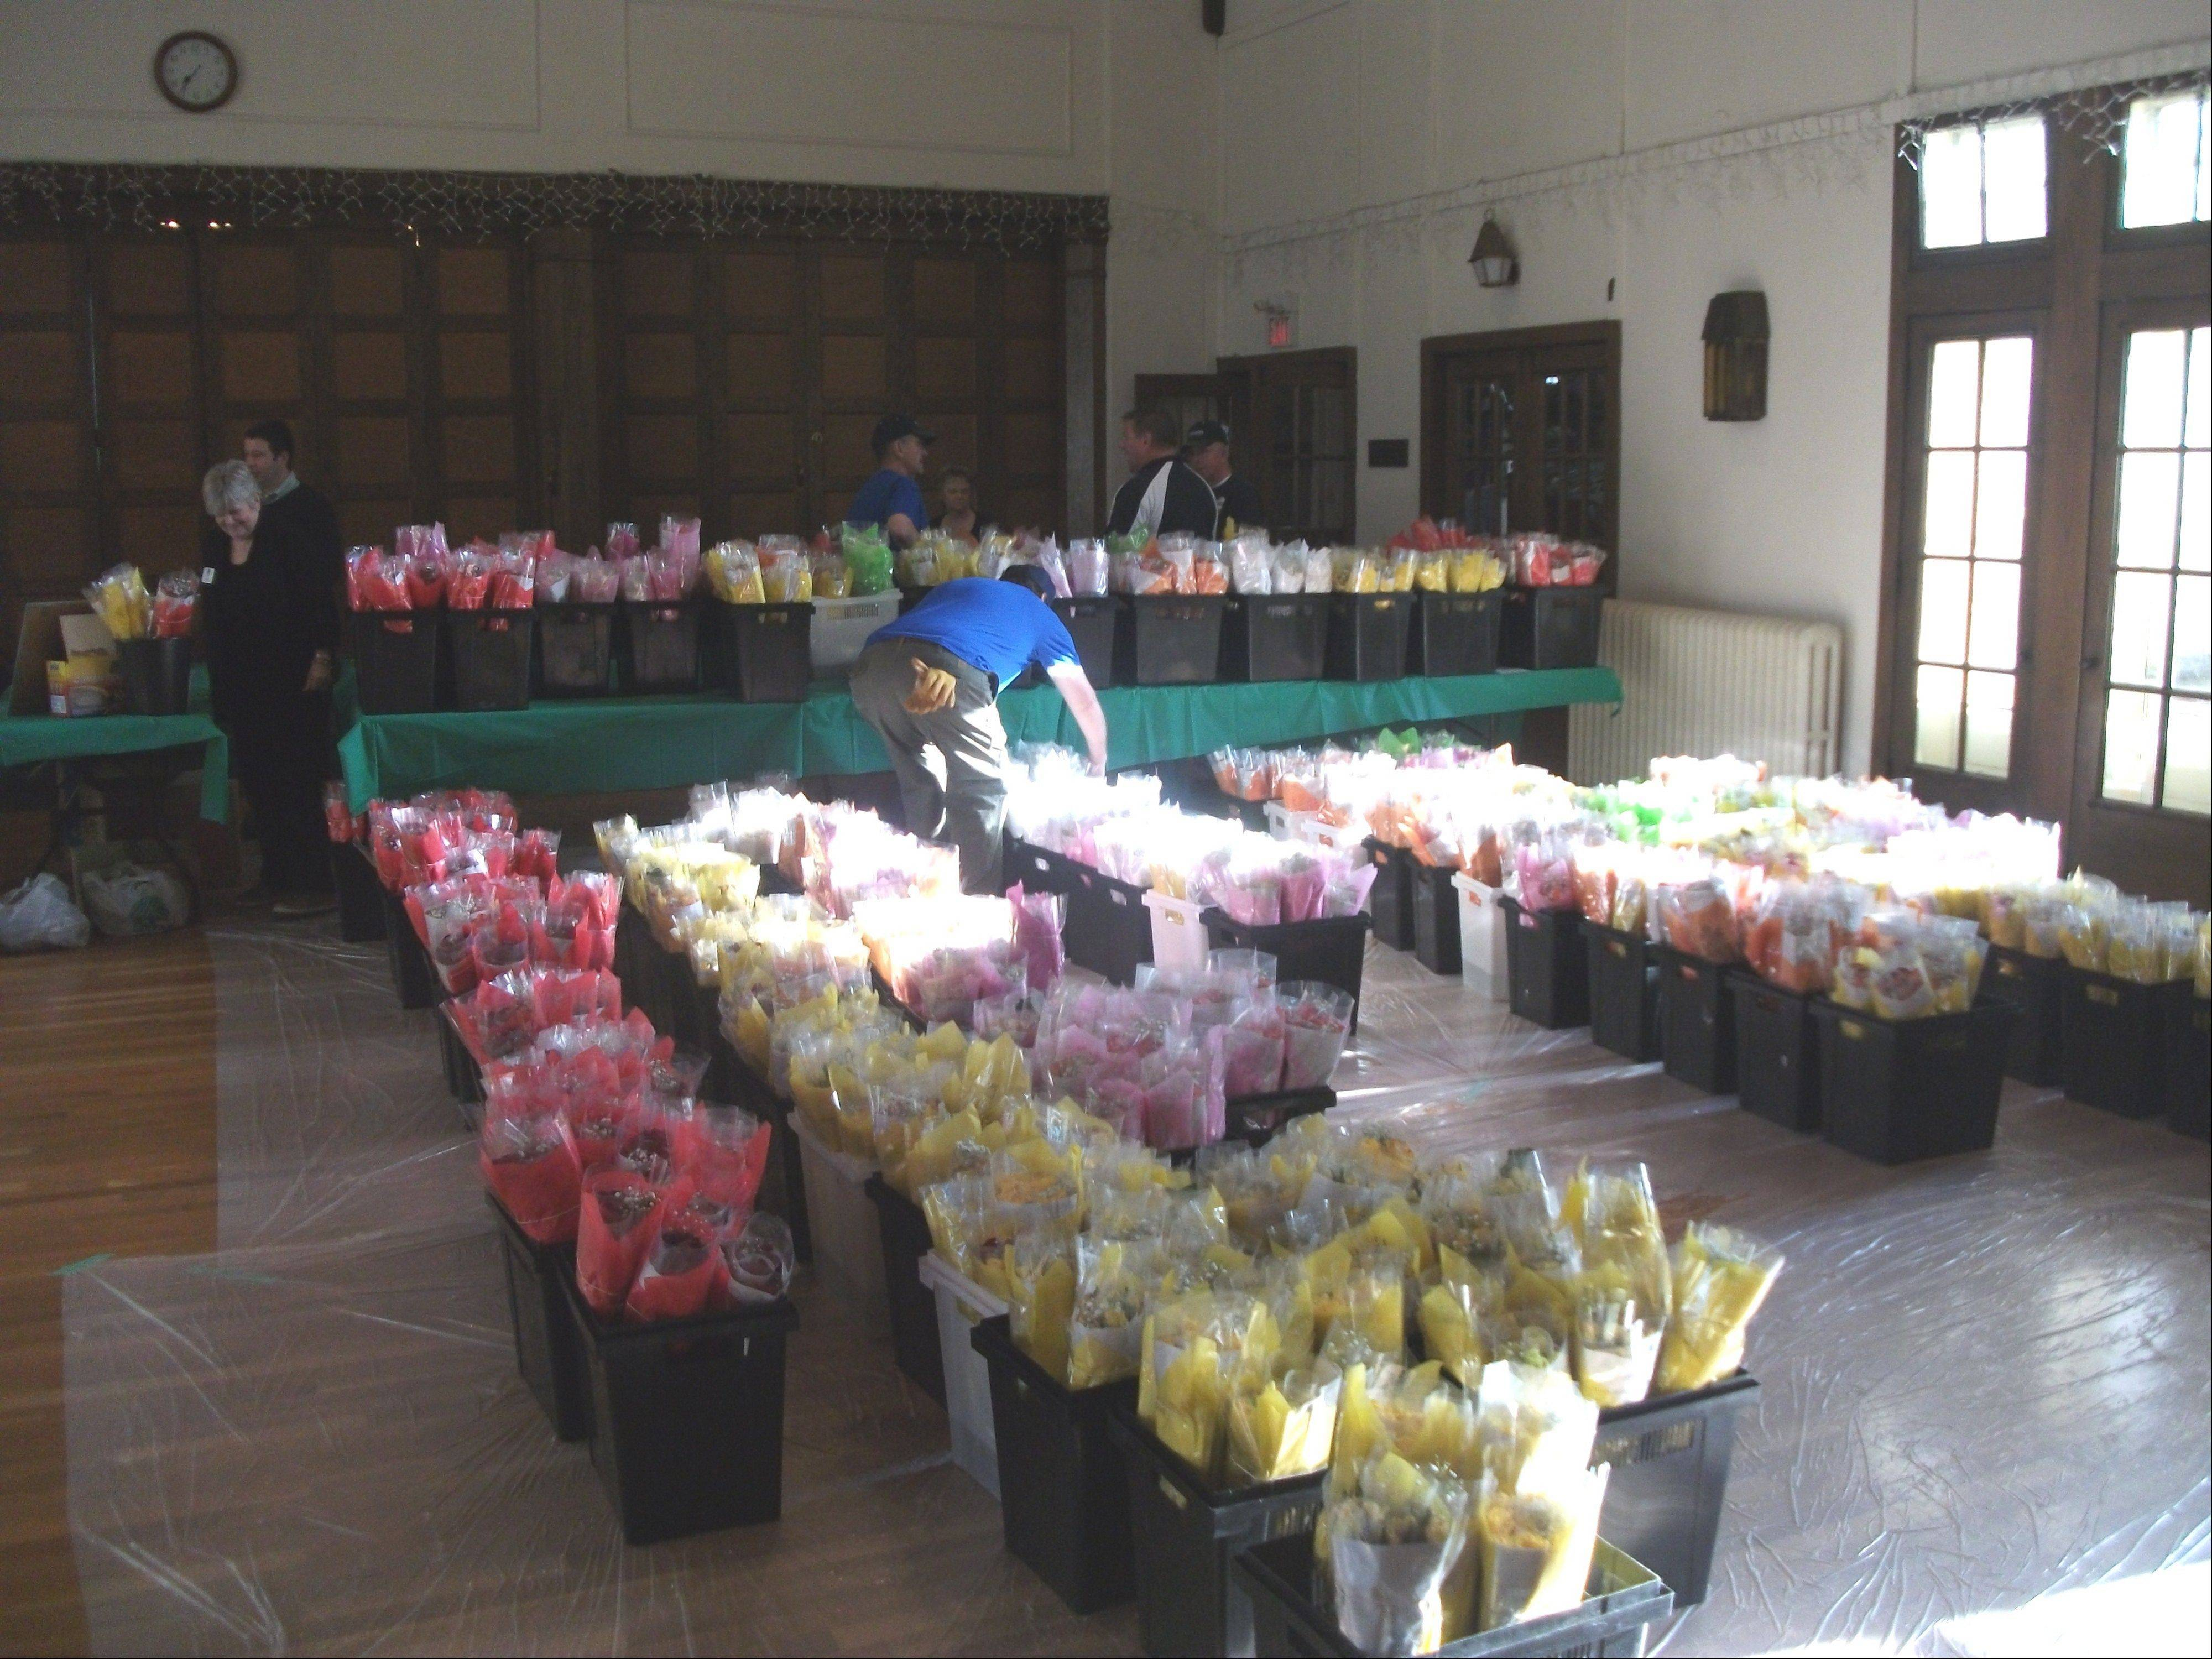 More than 1,200 dozen roses are lined up for pickup.